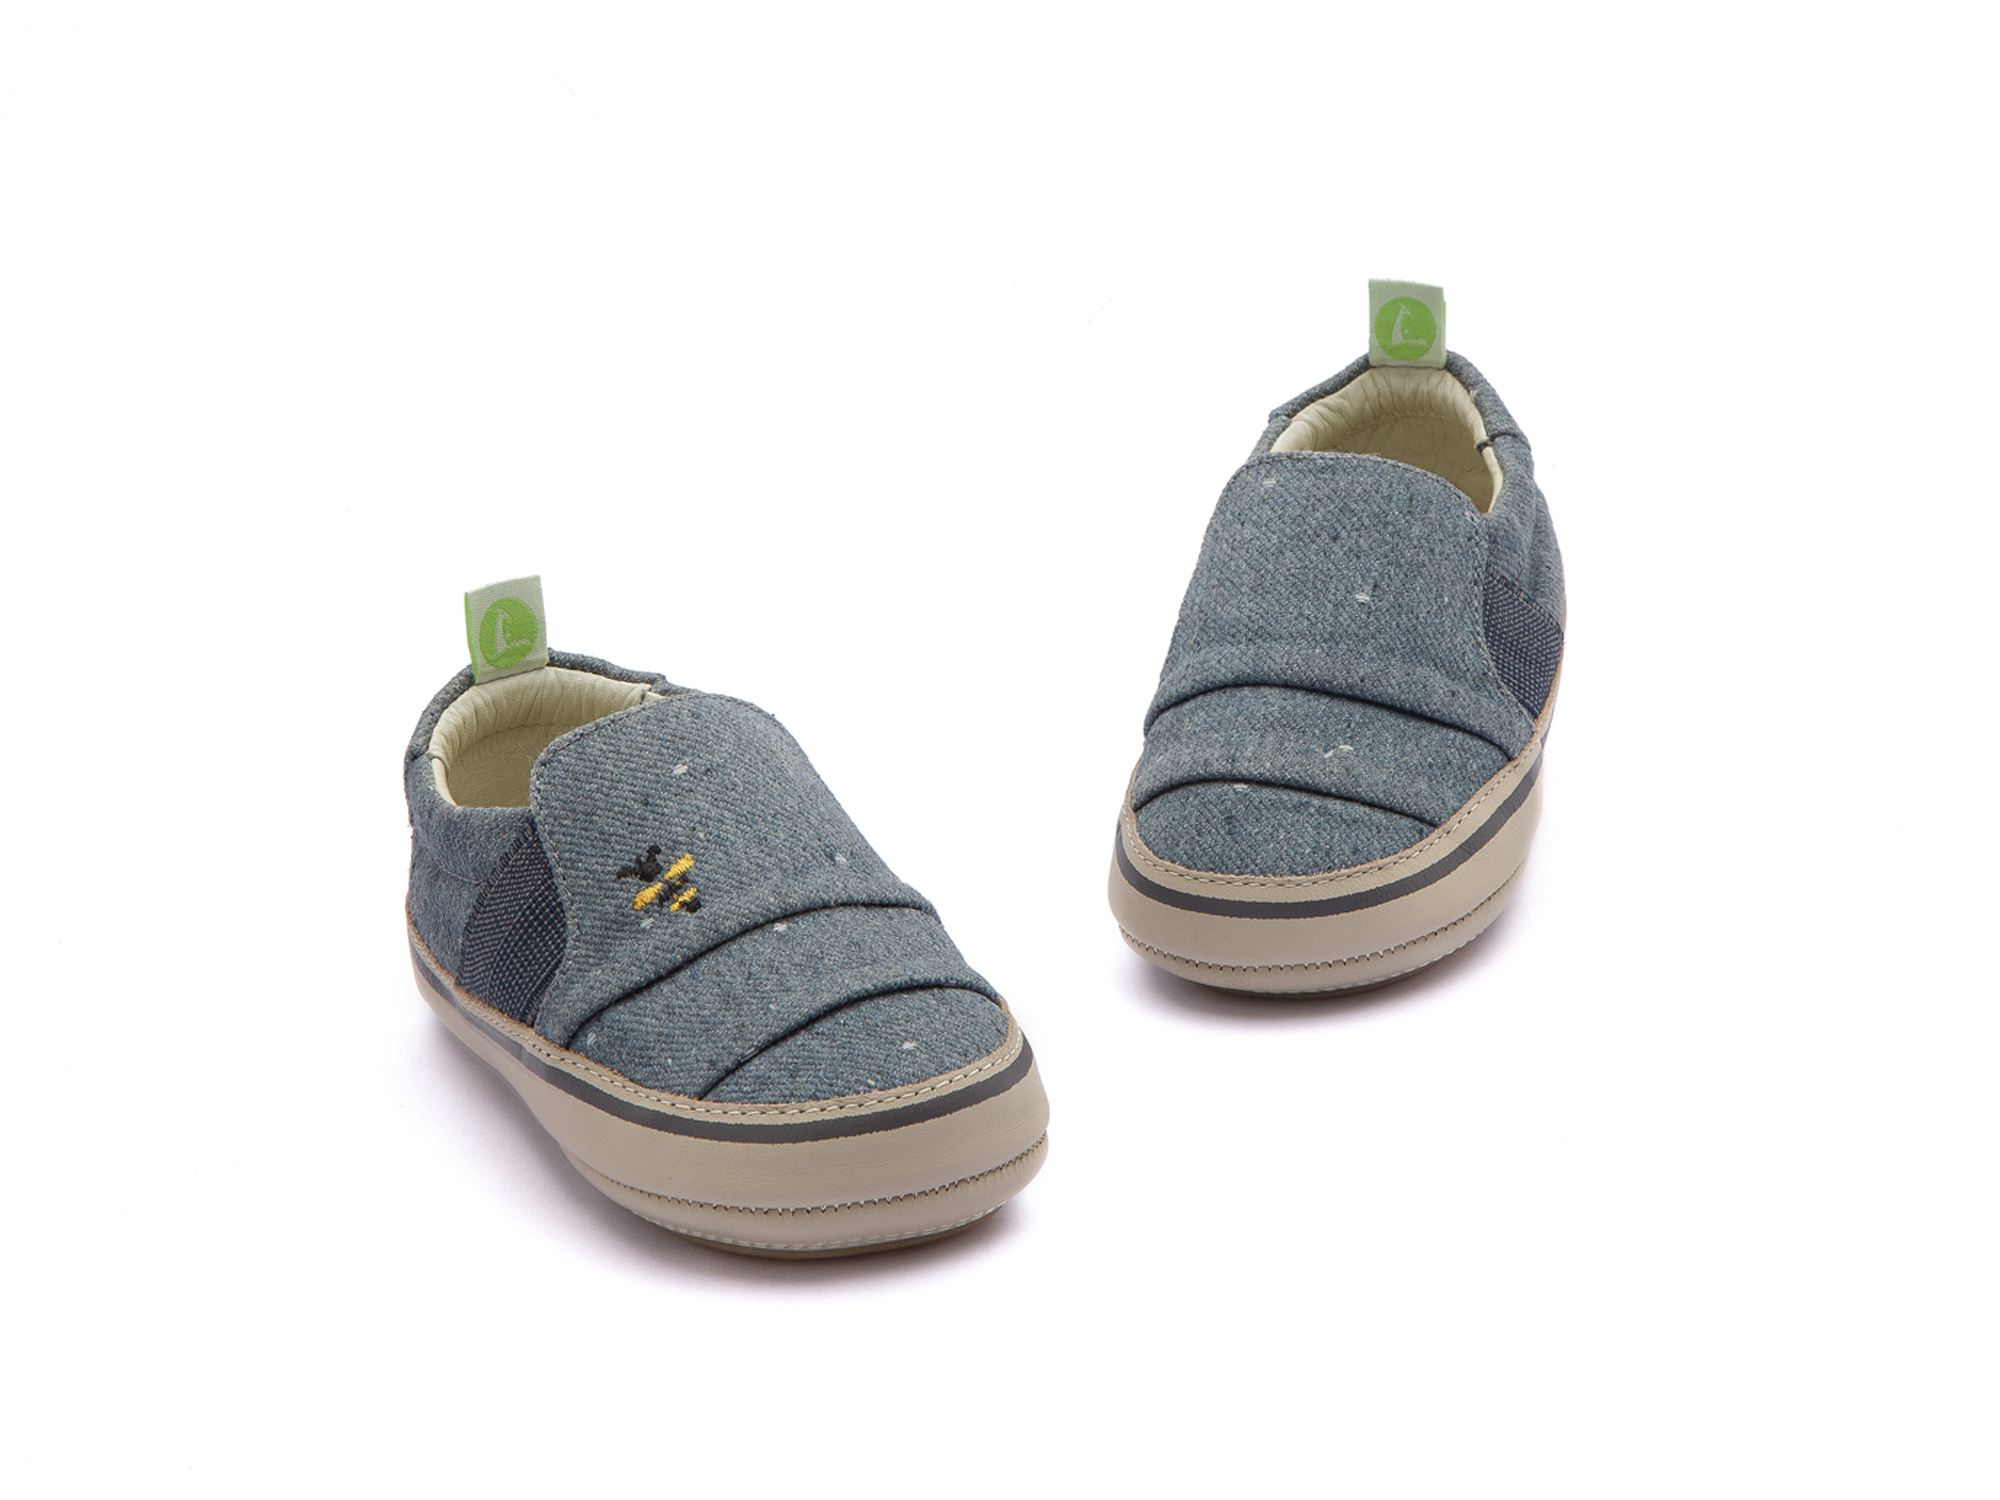 Tênis Slippy Bluish Space Canvas Beeswax/ Pumice Baby 0 à 2 anos - 2